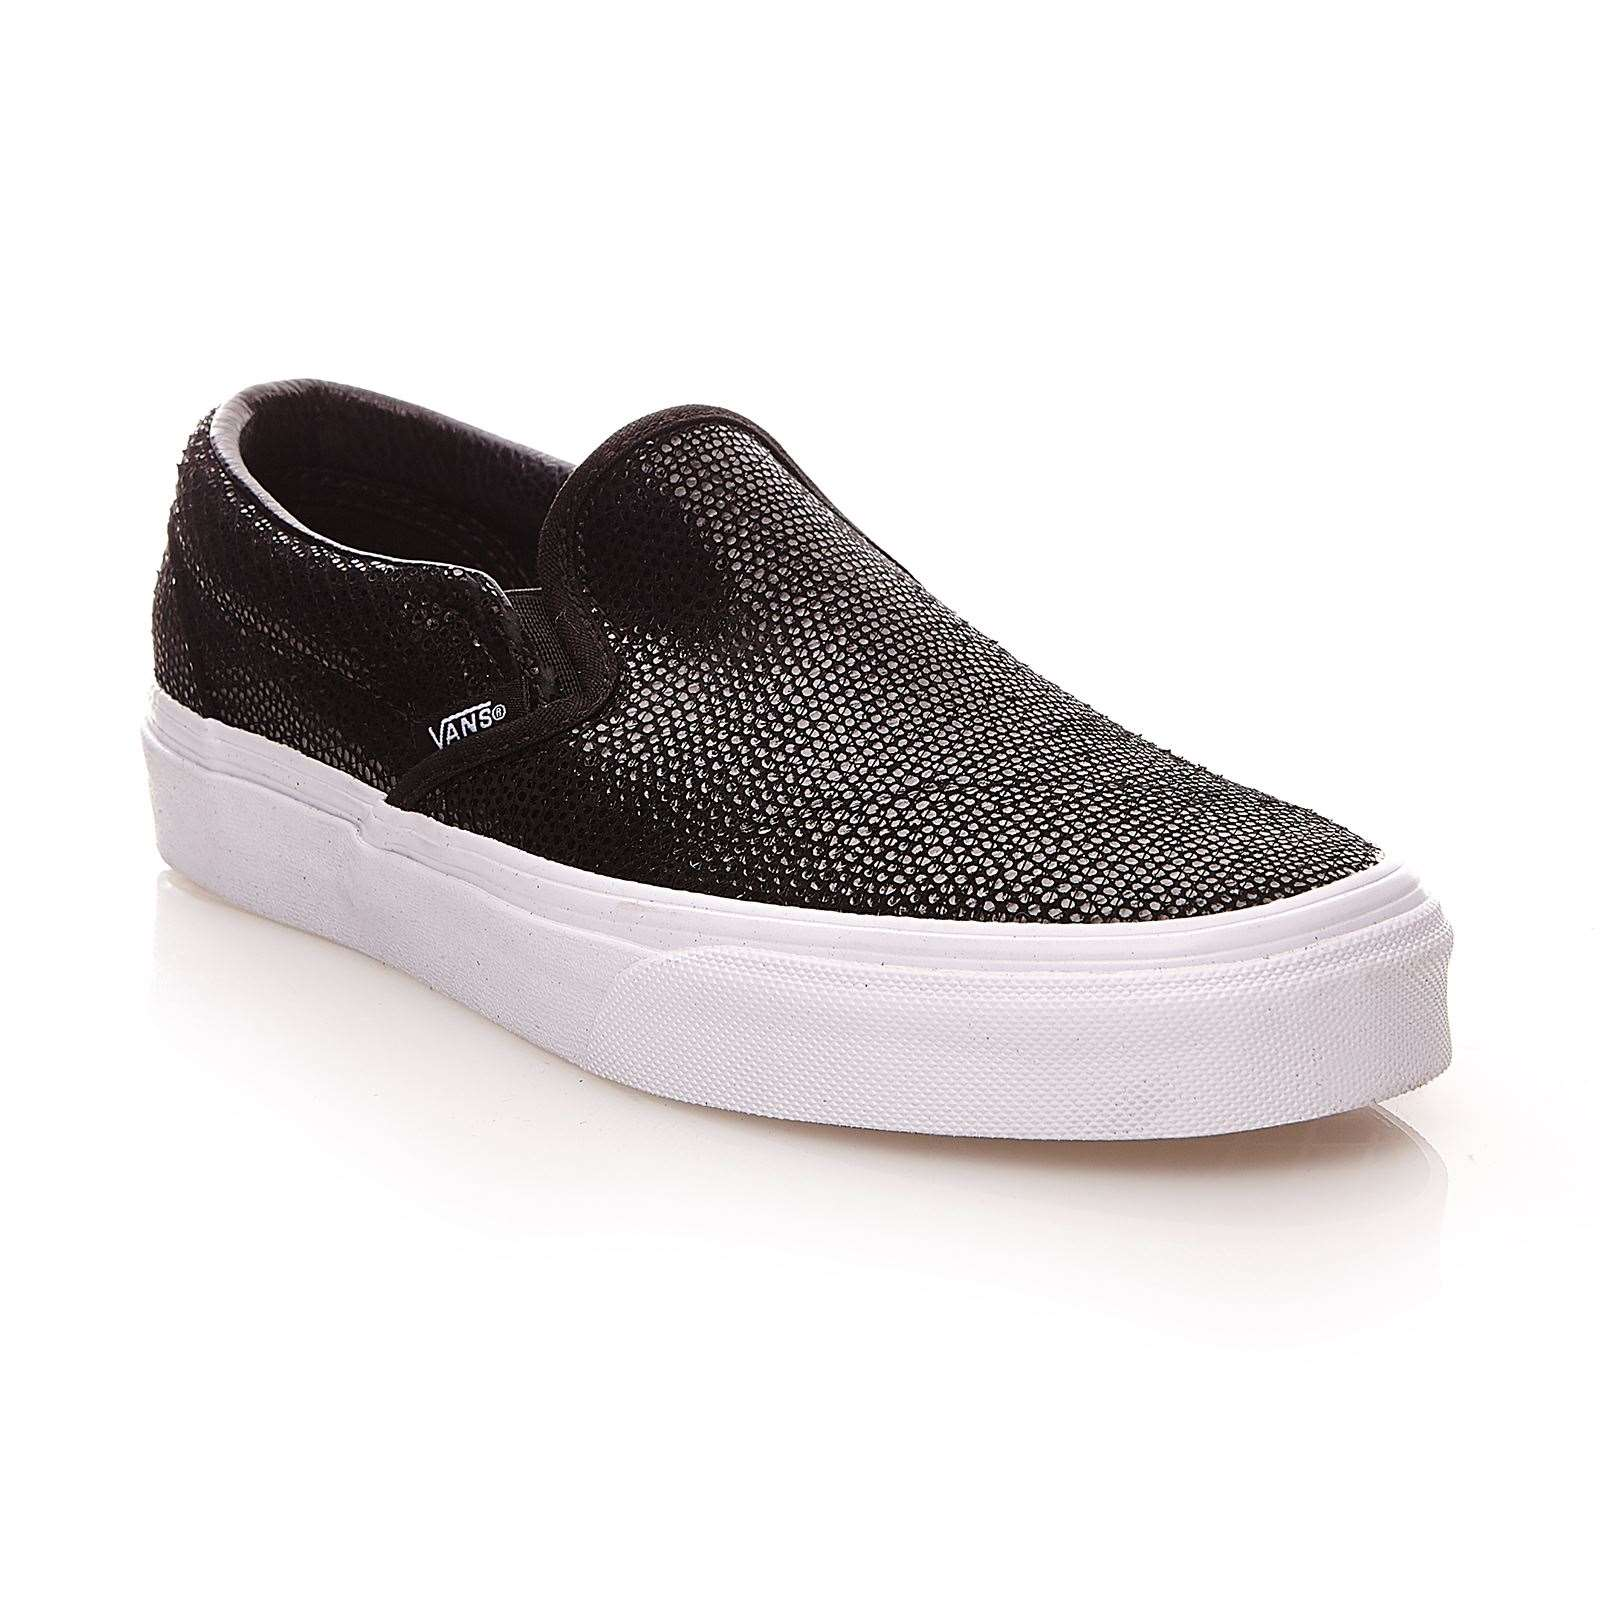 vans u classic slip on en cuir noir brandalley. Black Bedroom Furniture Sets. Home Design Ideas